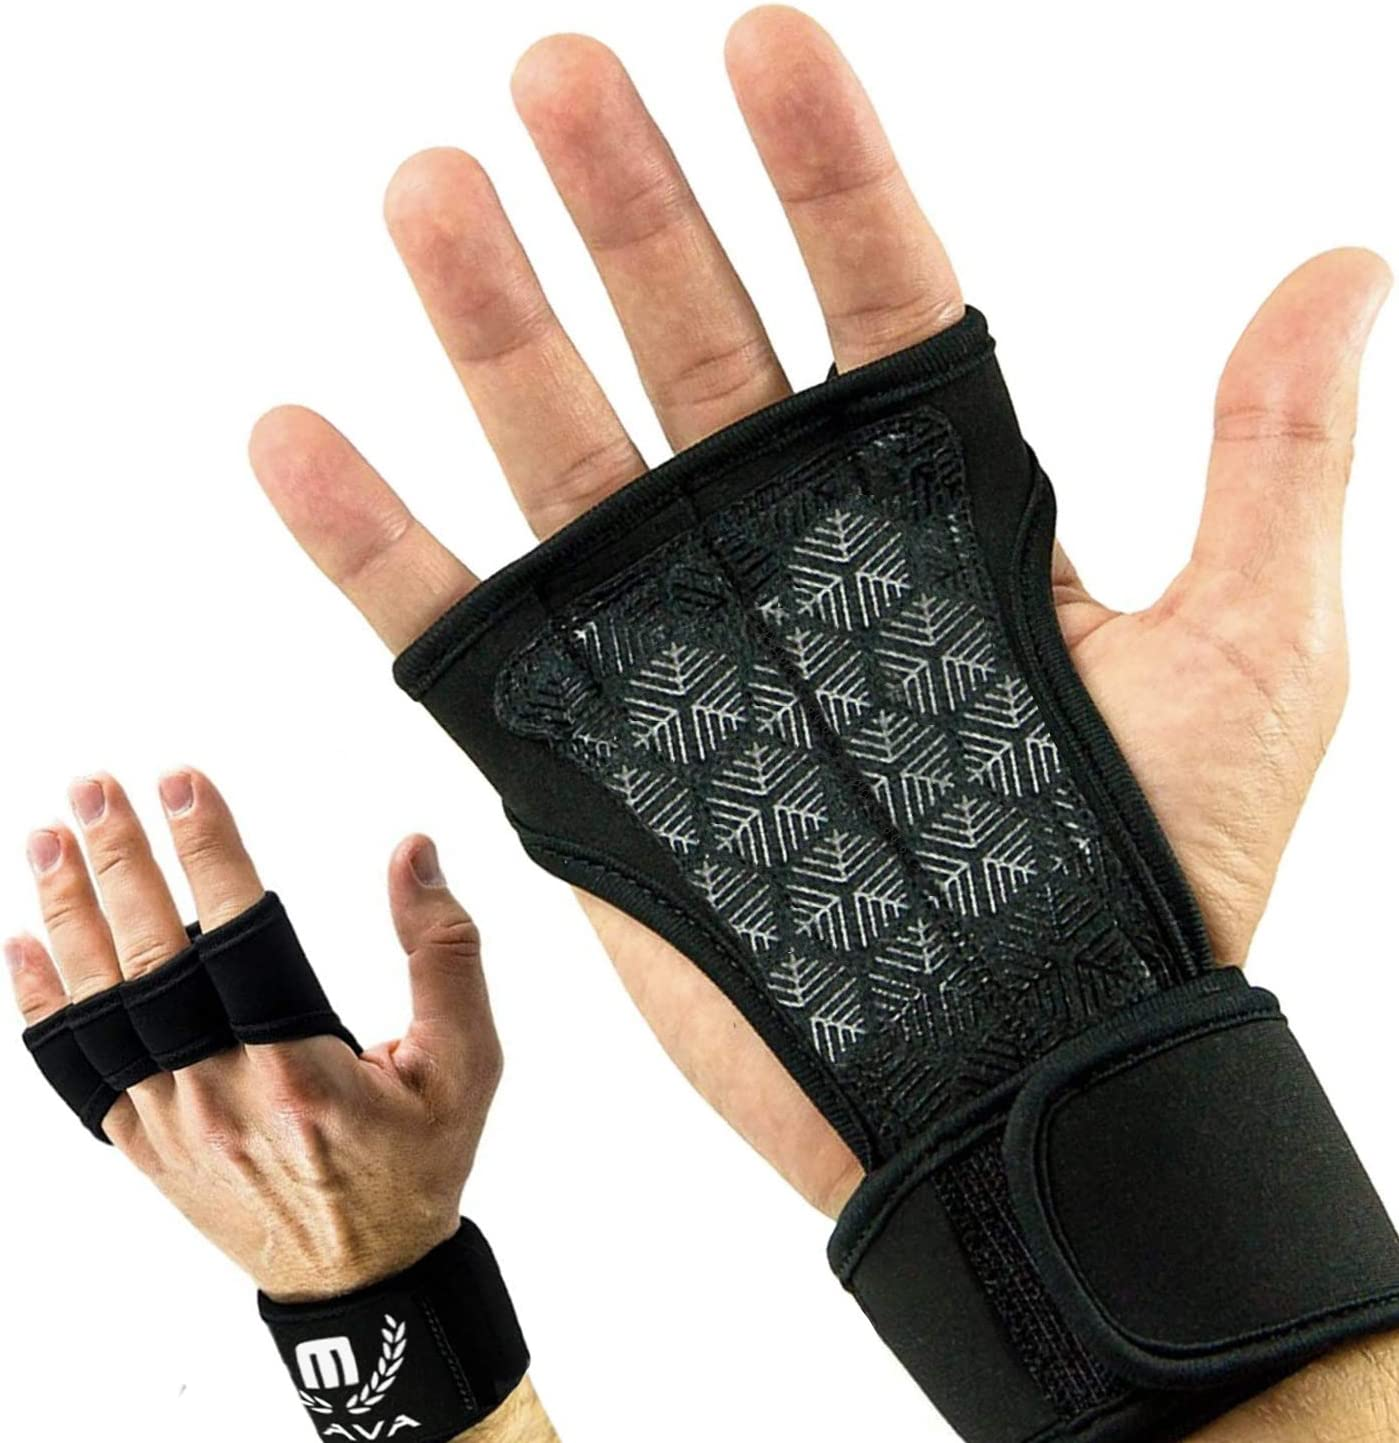 Black XL Mava Sports Cross Training Gloves with Wrist Support for Gym Workouts